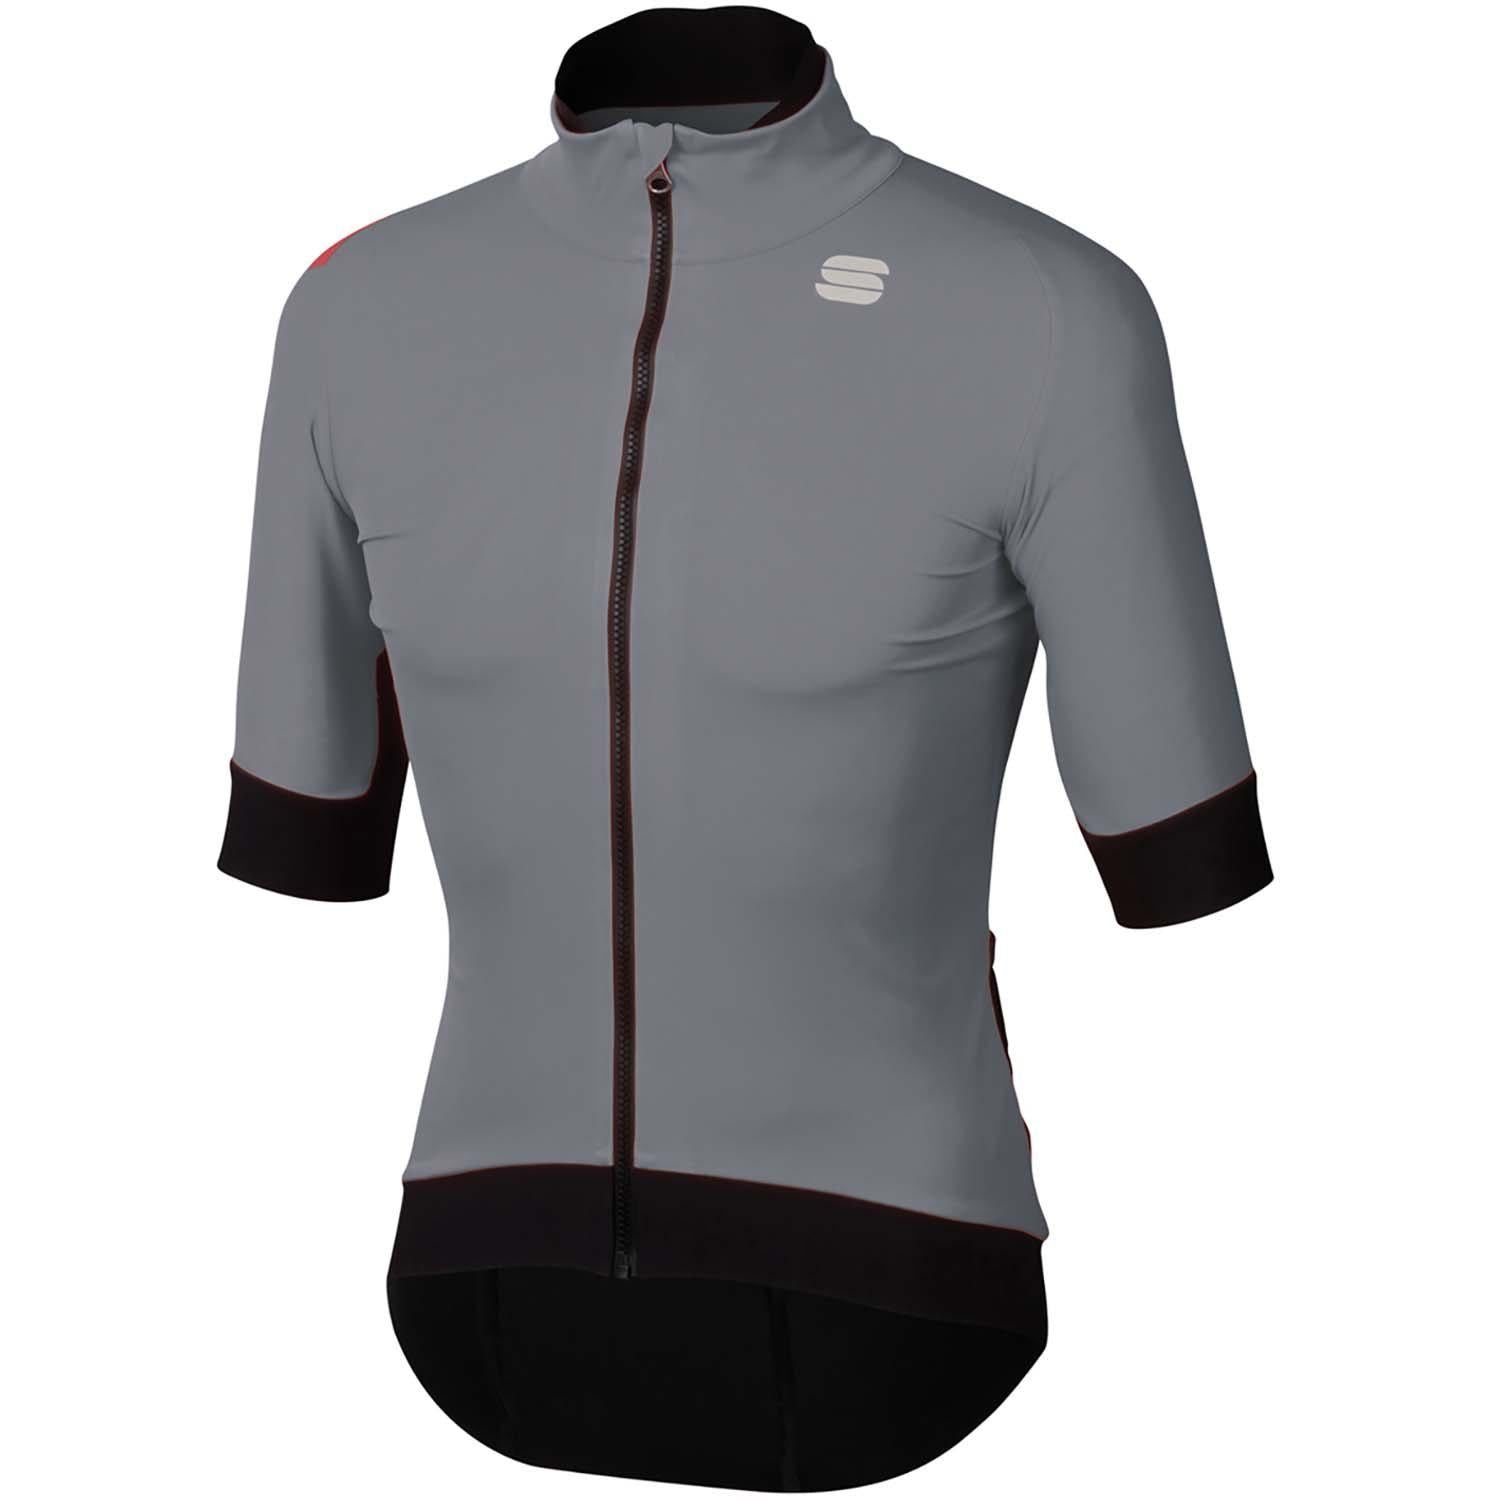 Sportful-Sportful Fiandre Pro Short Sleeve Jacket-Cement-S-SF195012502-saddleback-elite-performance-cycling